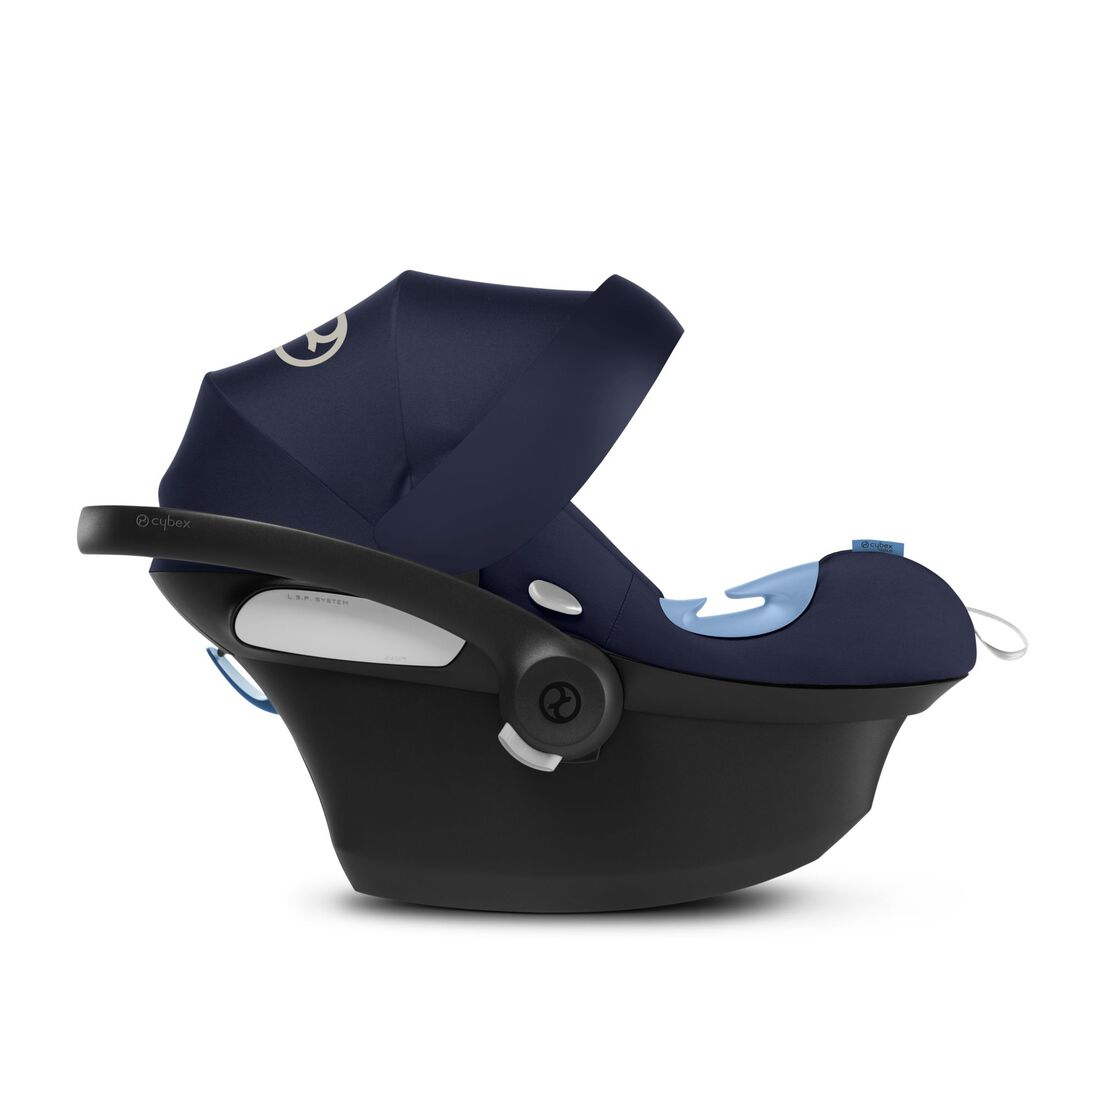 CYBEX Aton M - Navy Blue in Navy Blue large image number 6